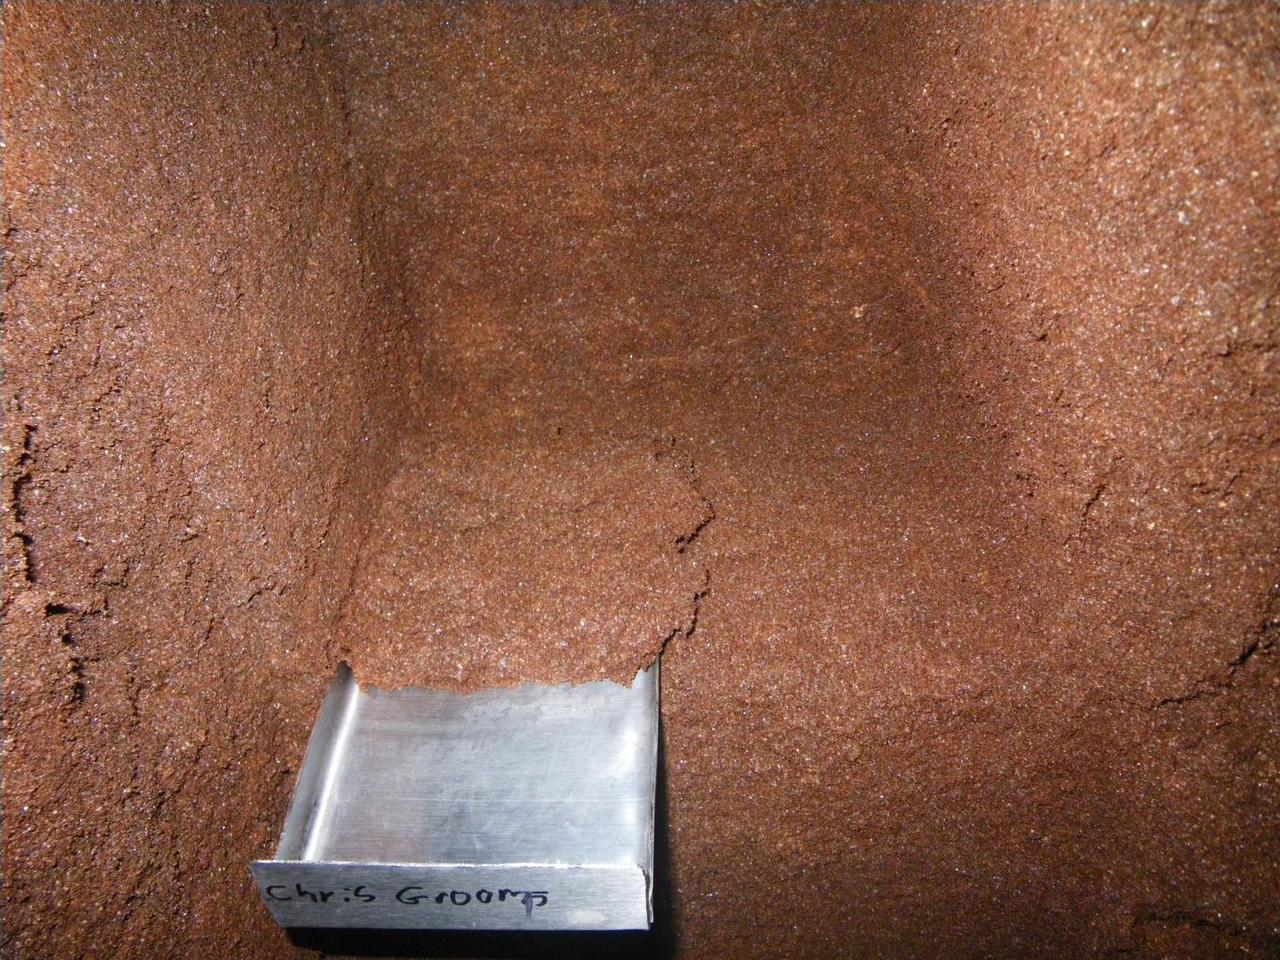 The bottom of the area from which the core sample was taken